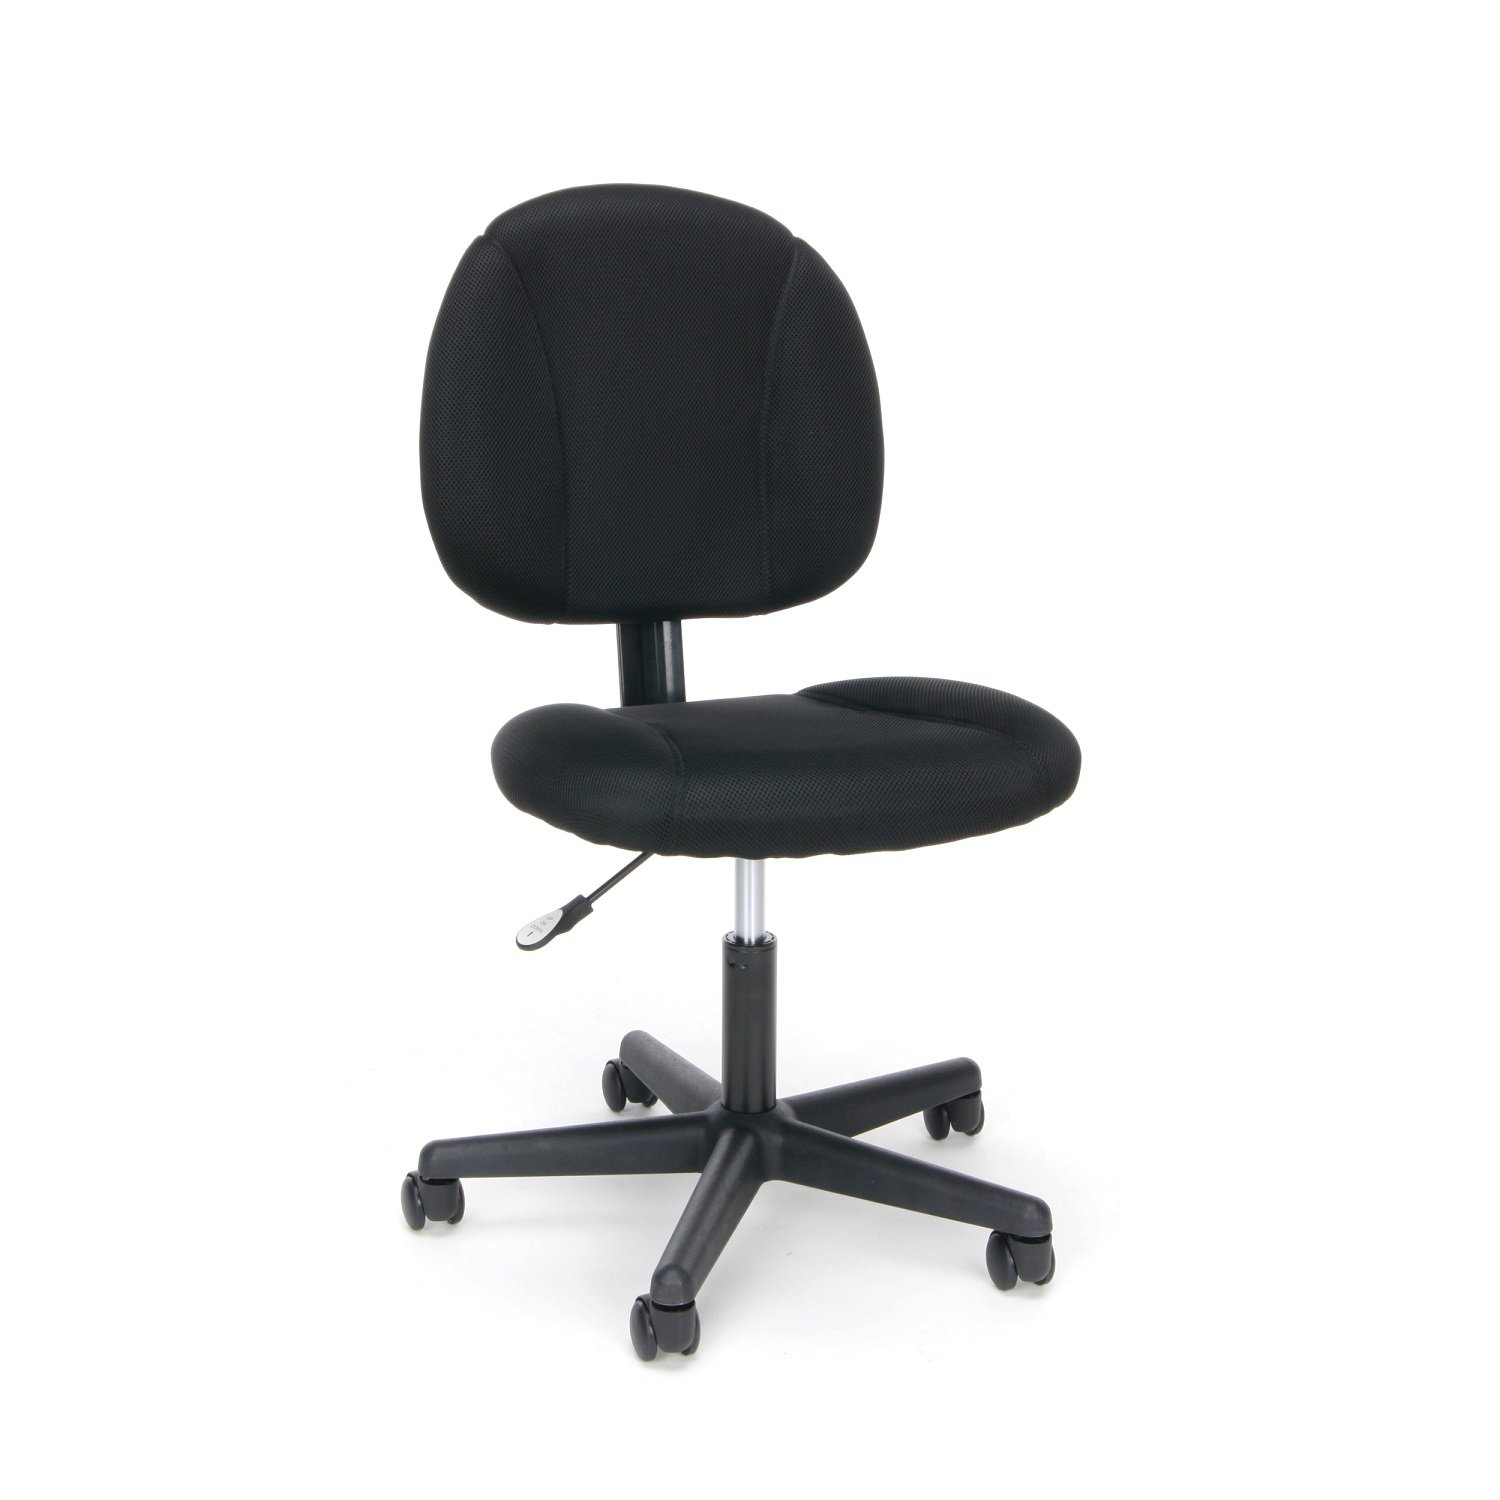 OFM Essentials Swivel Upholstered Armless Task Chair - Ergonomic Computer/Office Chair, Black (ESS-3060)